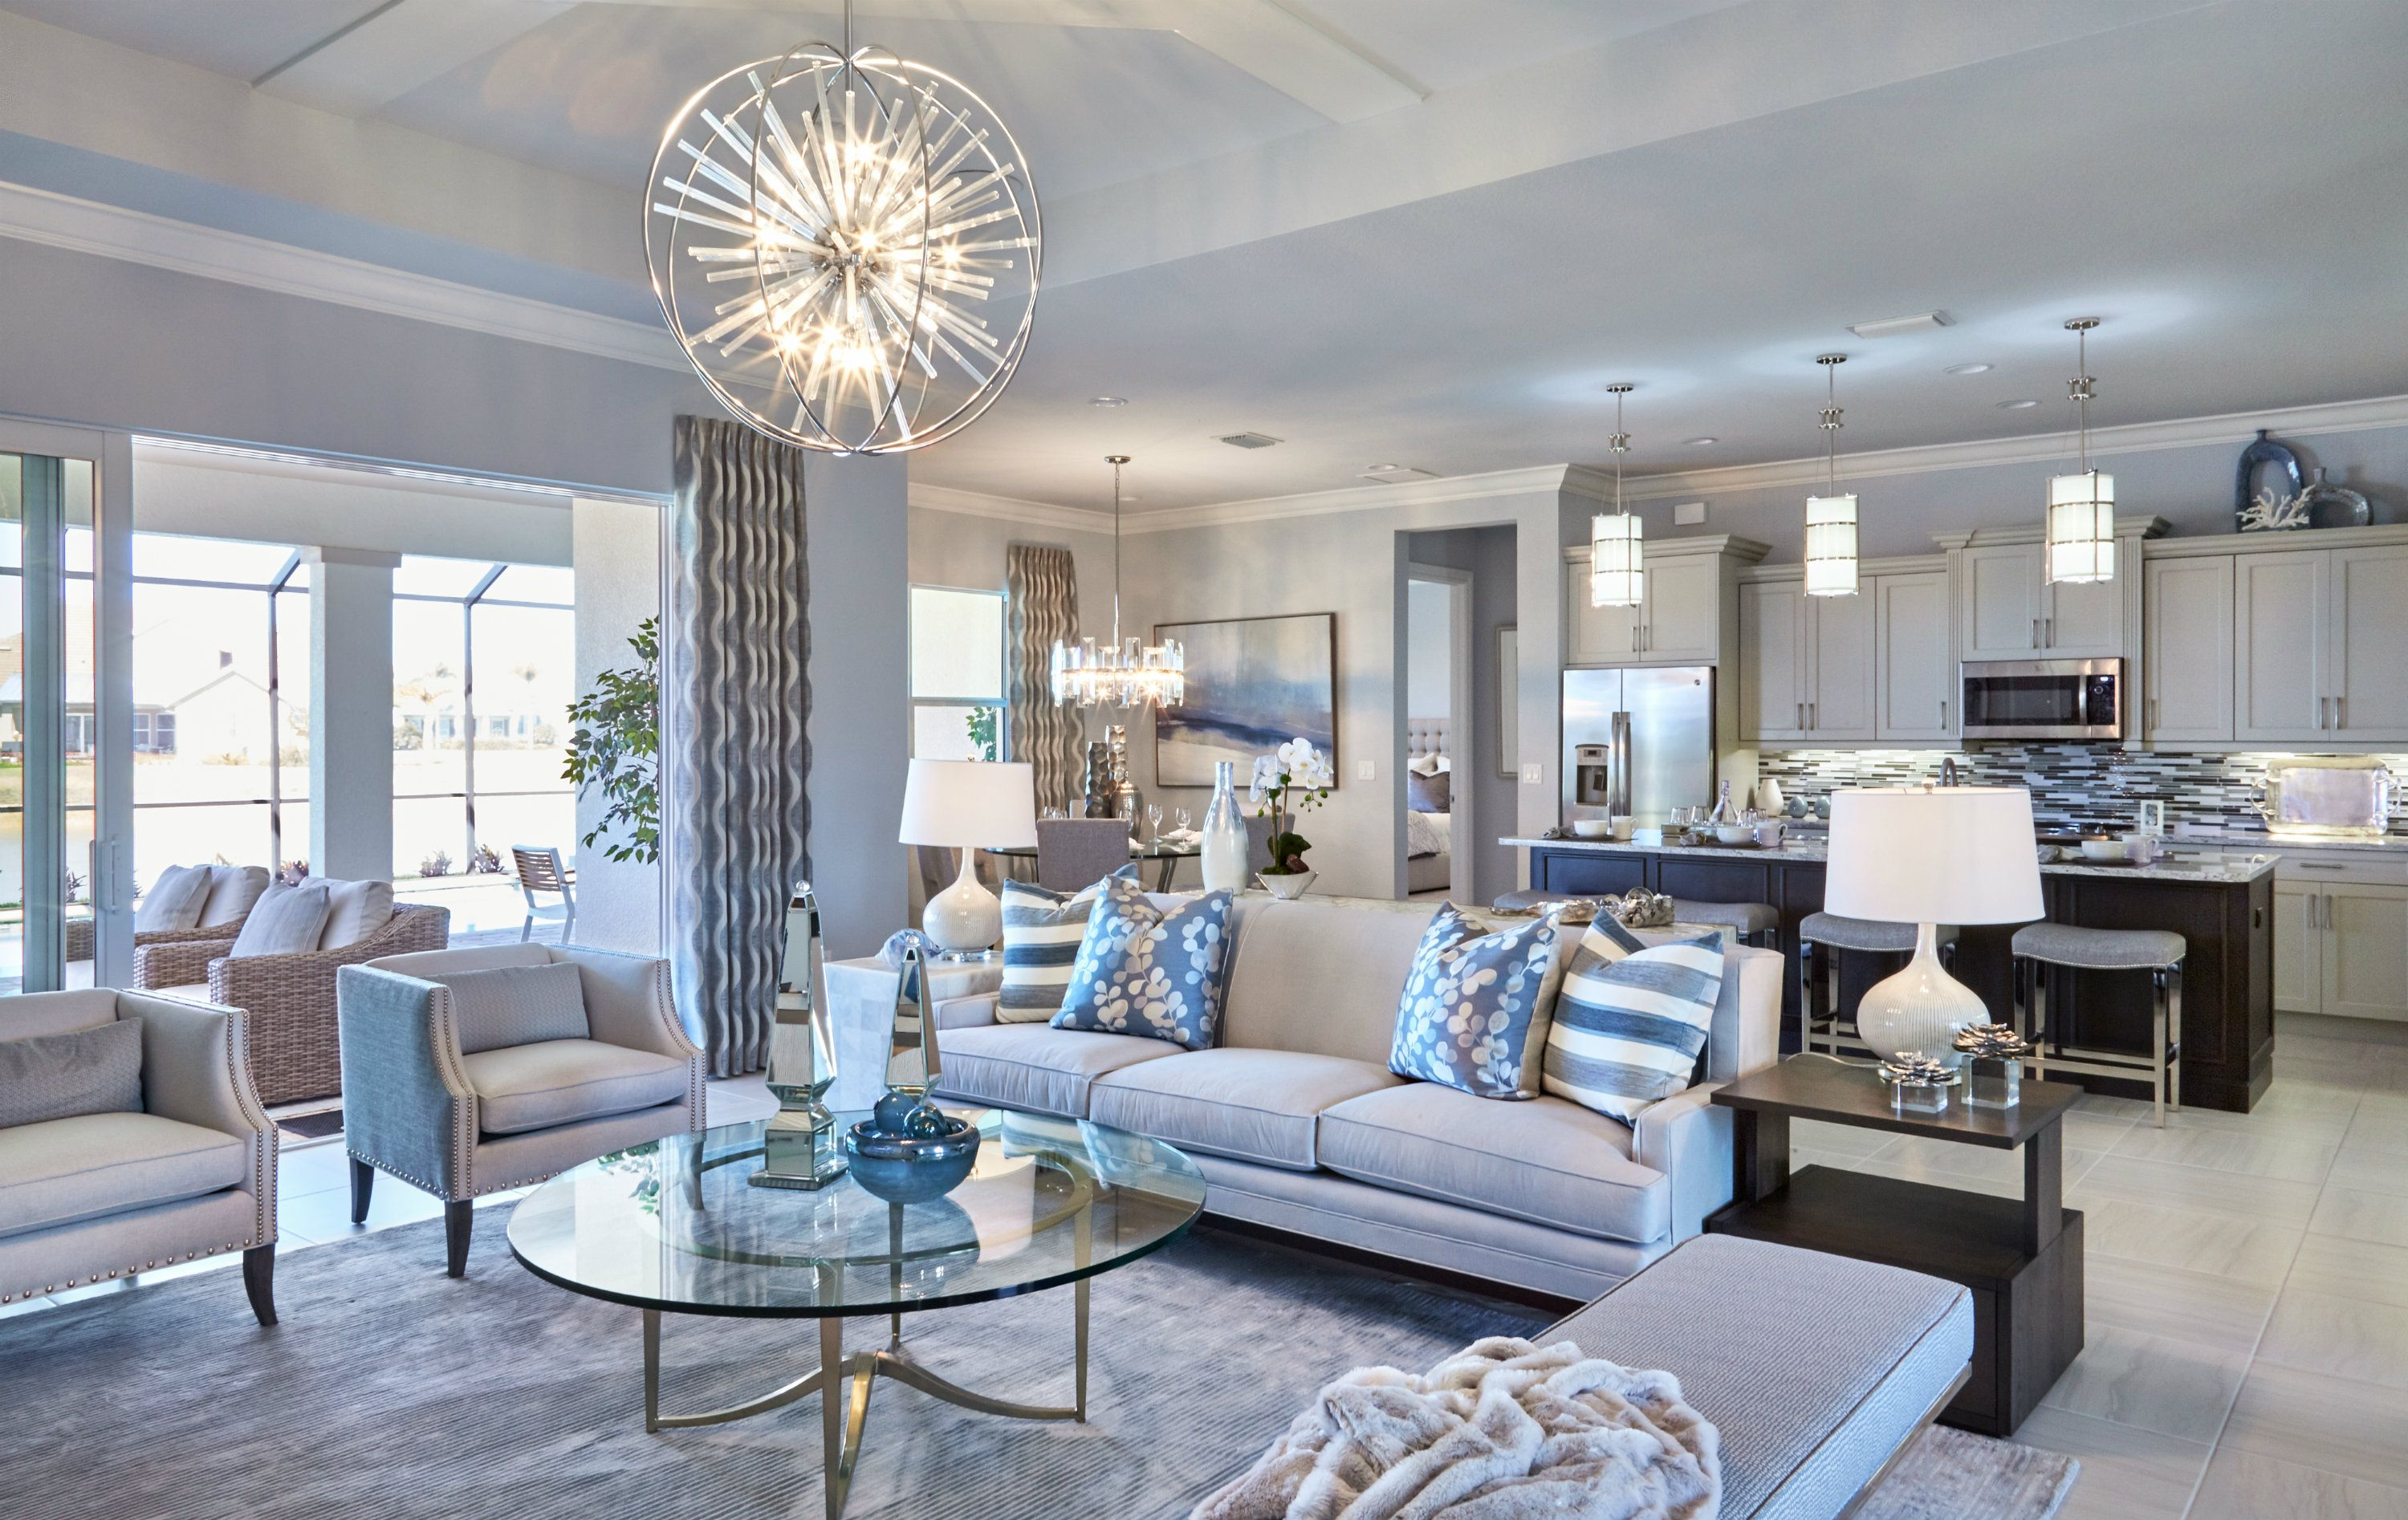 Contemporary Chic Style With An Elegant Color Scheme Of Soft Blues